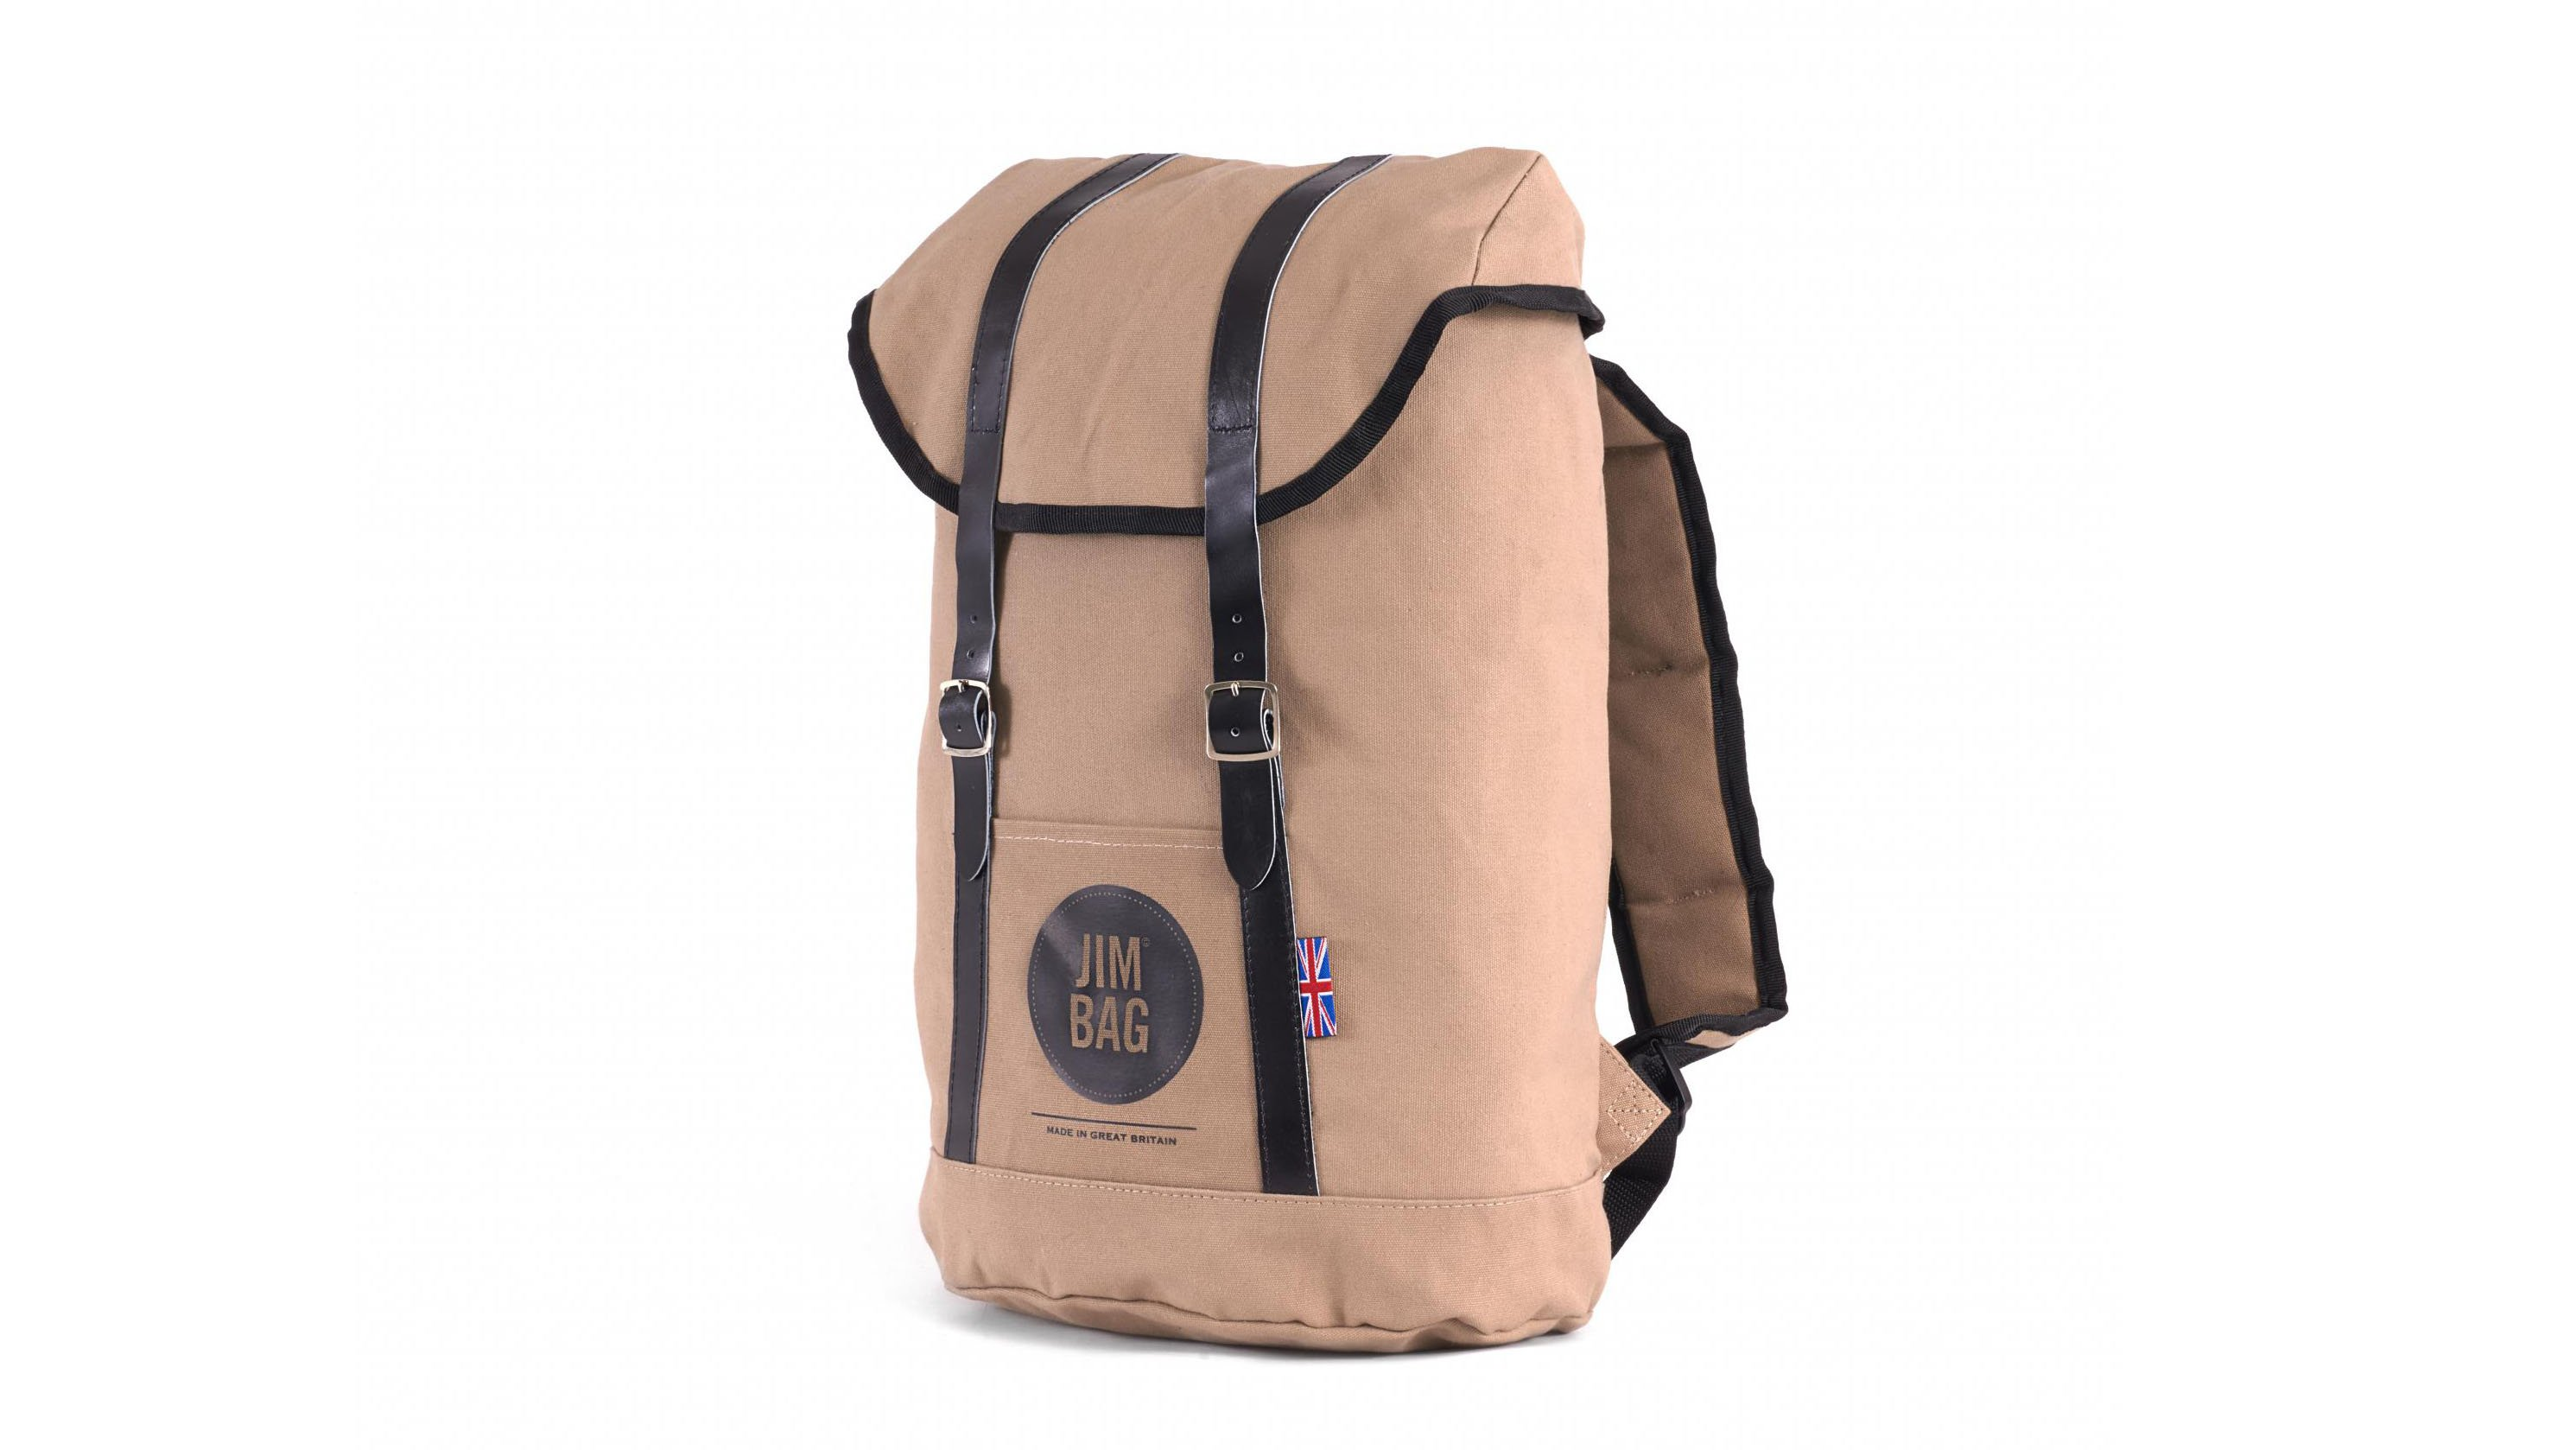 f6bc4acbd2ec British company Jim Bag makes colourful bags in all shapes and sizes –  duffels